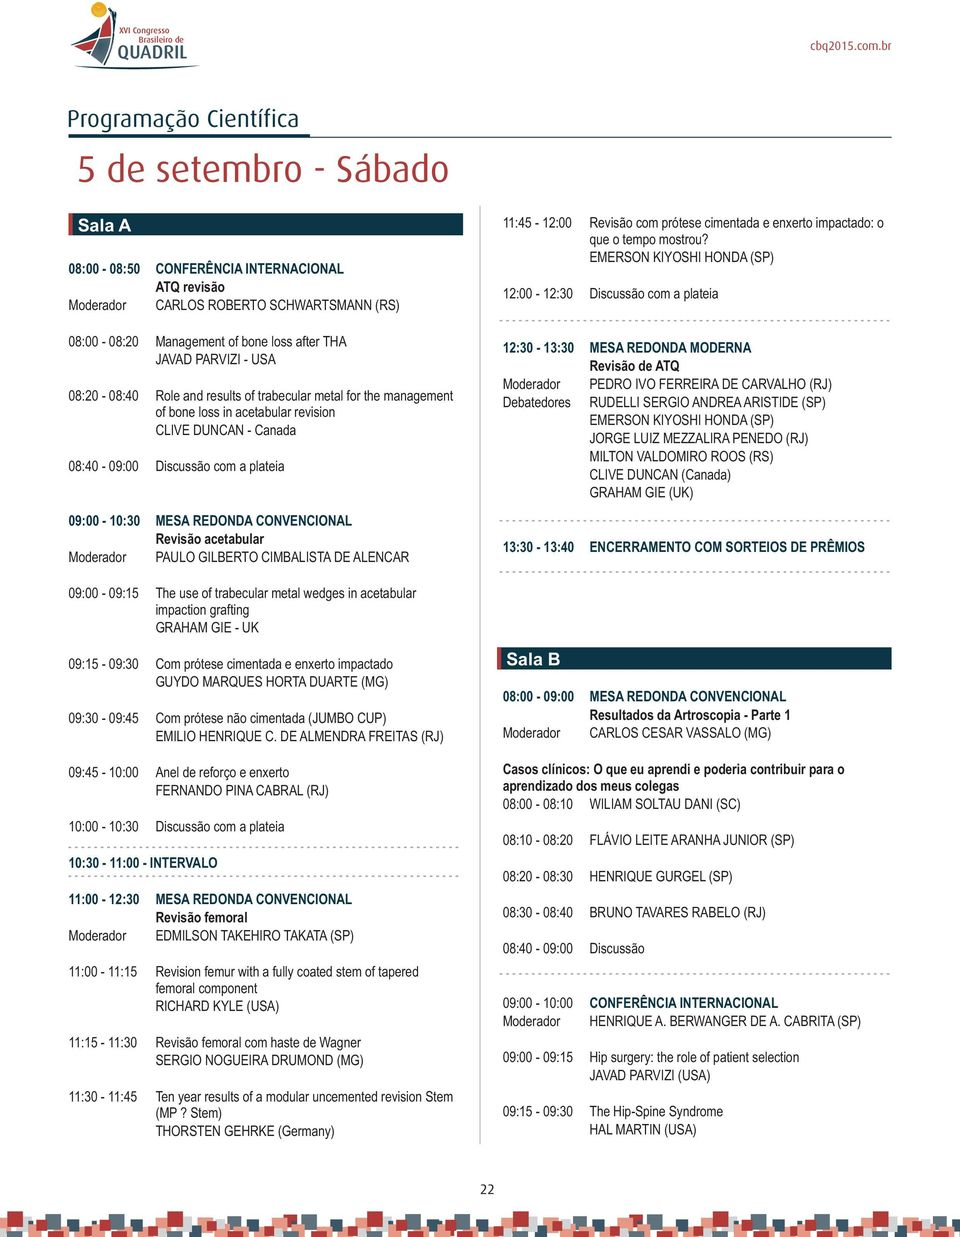 08:0-08:40 Role and results of trabecular metal for the management of bone loss in acetabular revision CLIVE DUNCAN - Canada 08:40-09:00 Discussão com a plateia 09:00-10:30 MESA REDONDA CONVENCIONAL